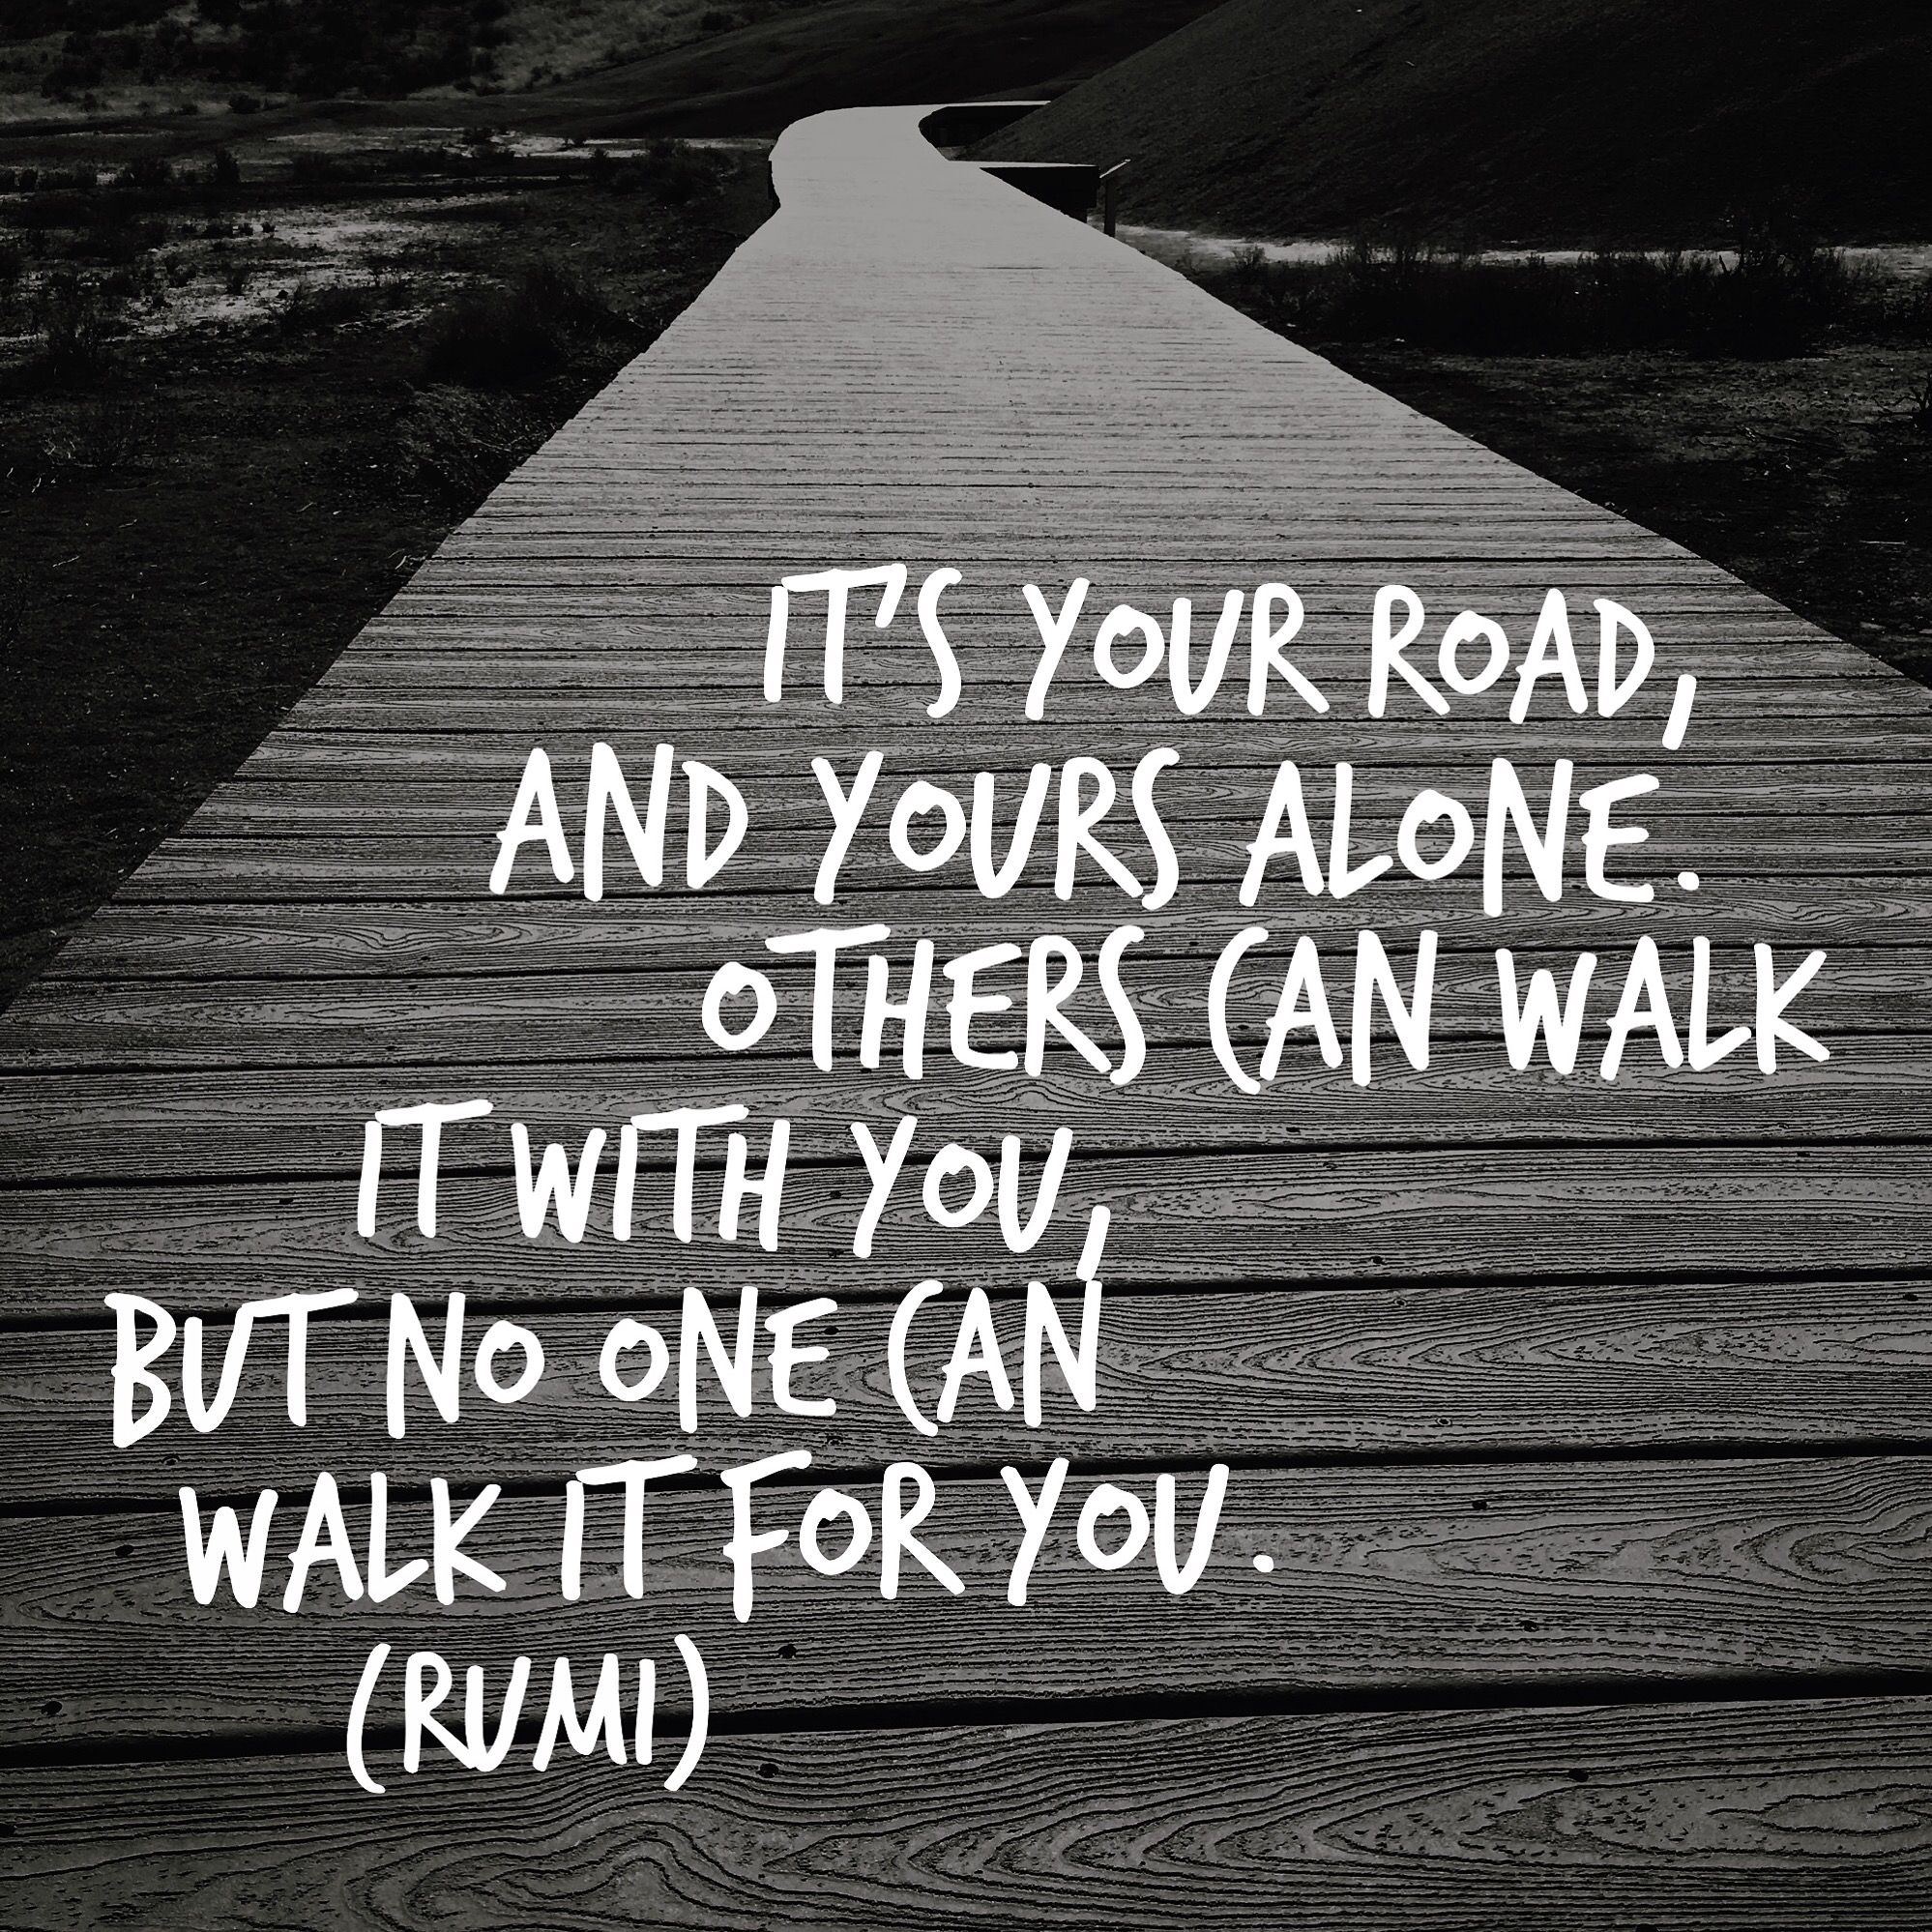 Elegant Rumi Quotes On Life And Death Best Life Quotes In Hd Images